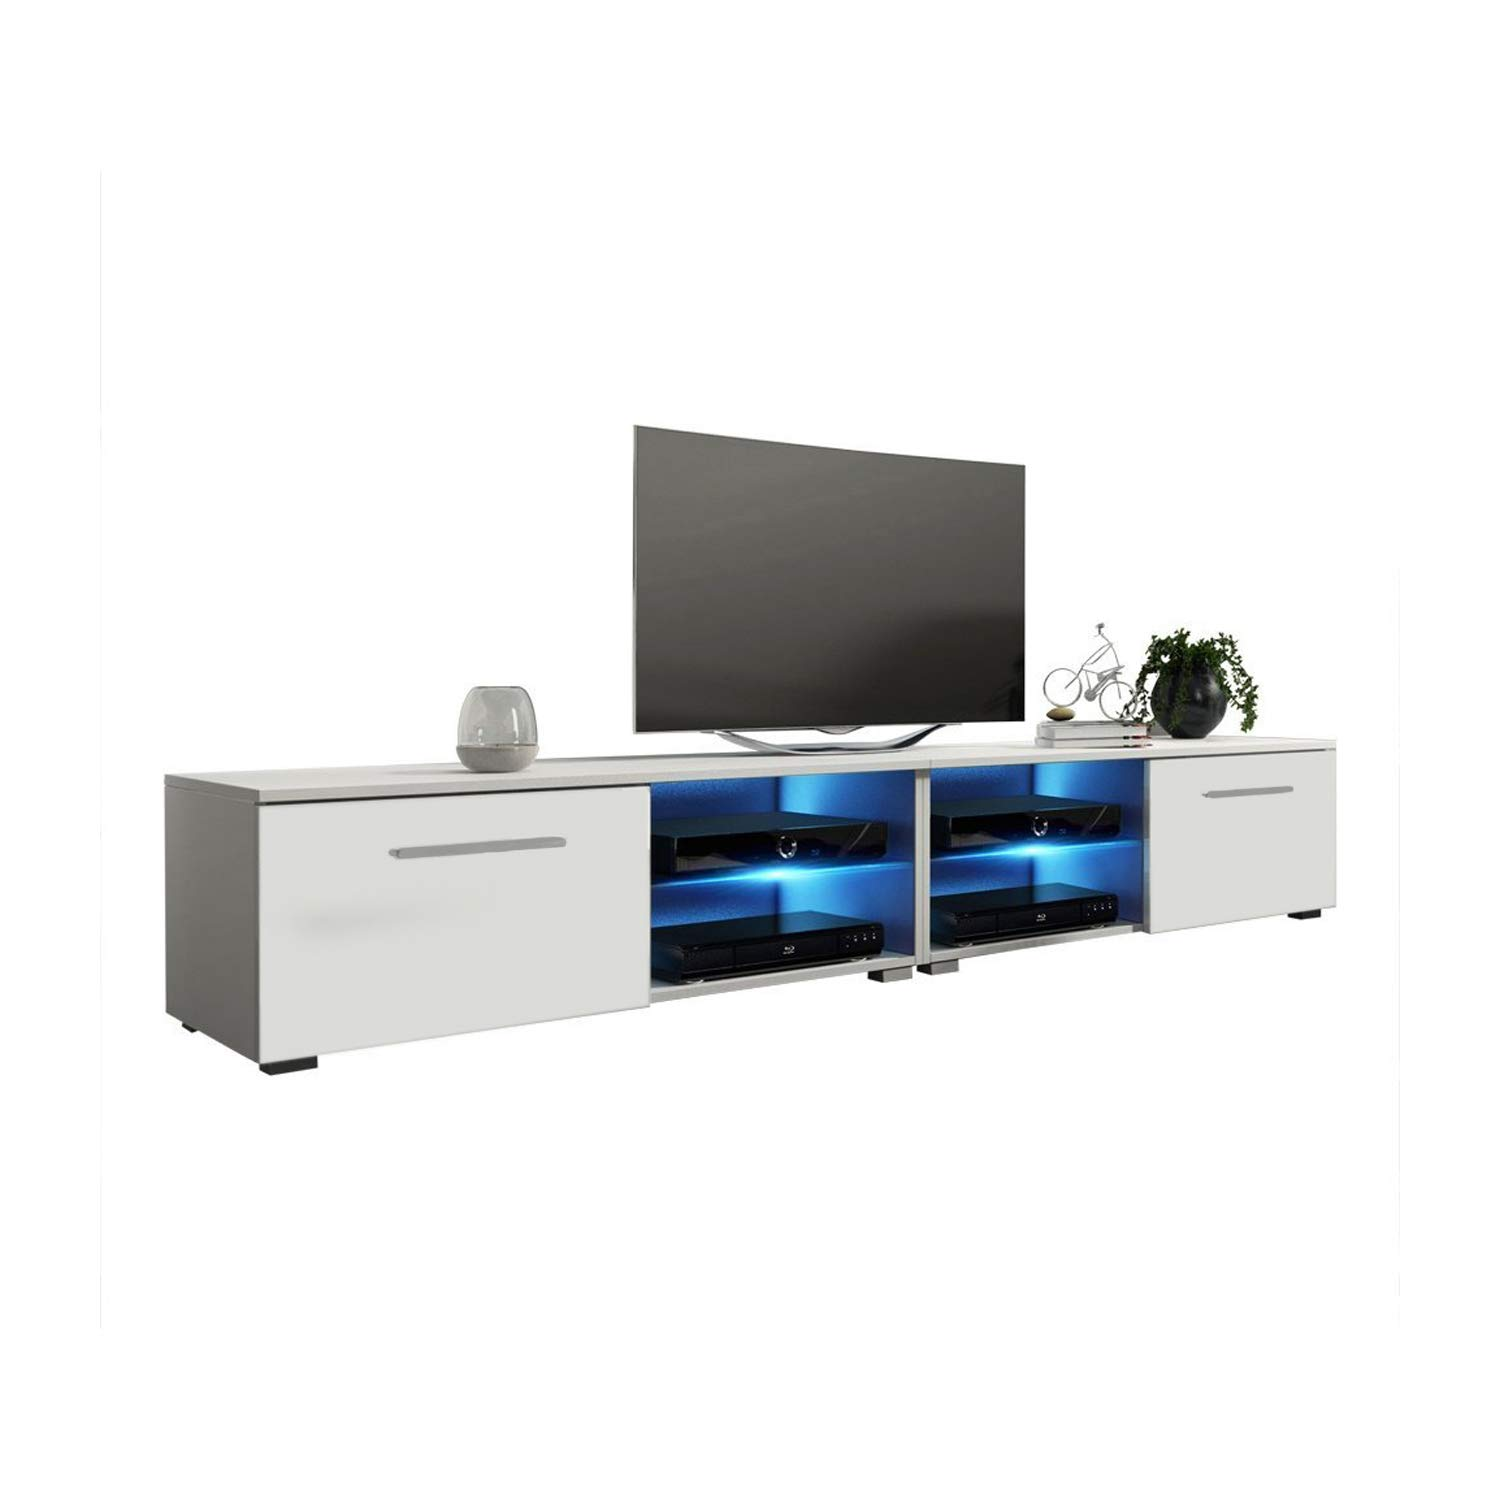 MEBLE FURNITURE & RUGS New Moon Modern TV Stand Matte Body High Gloss Doors with 16 Color LED (White, 81'') by MEBLE FURNITURE & RUGS